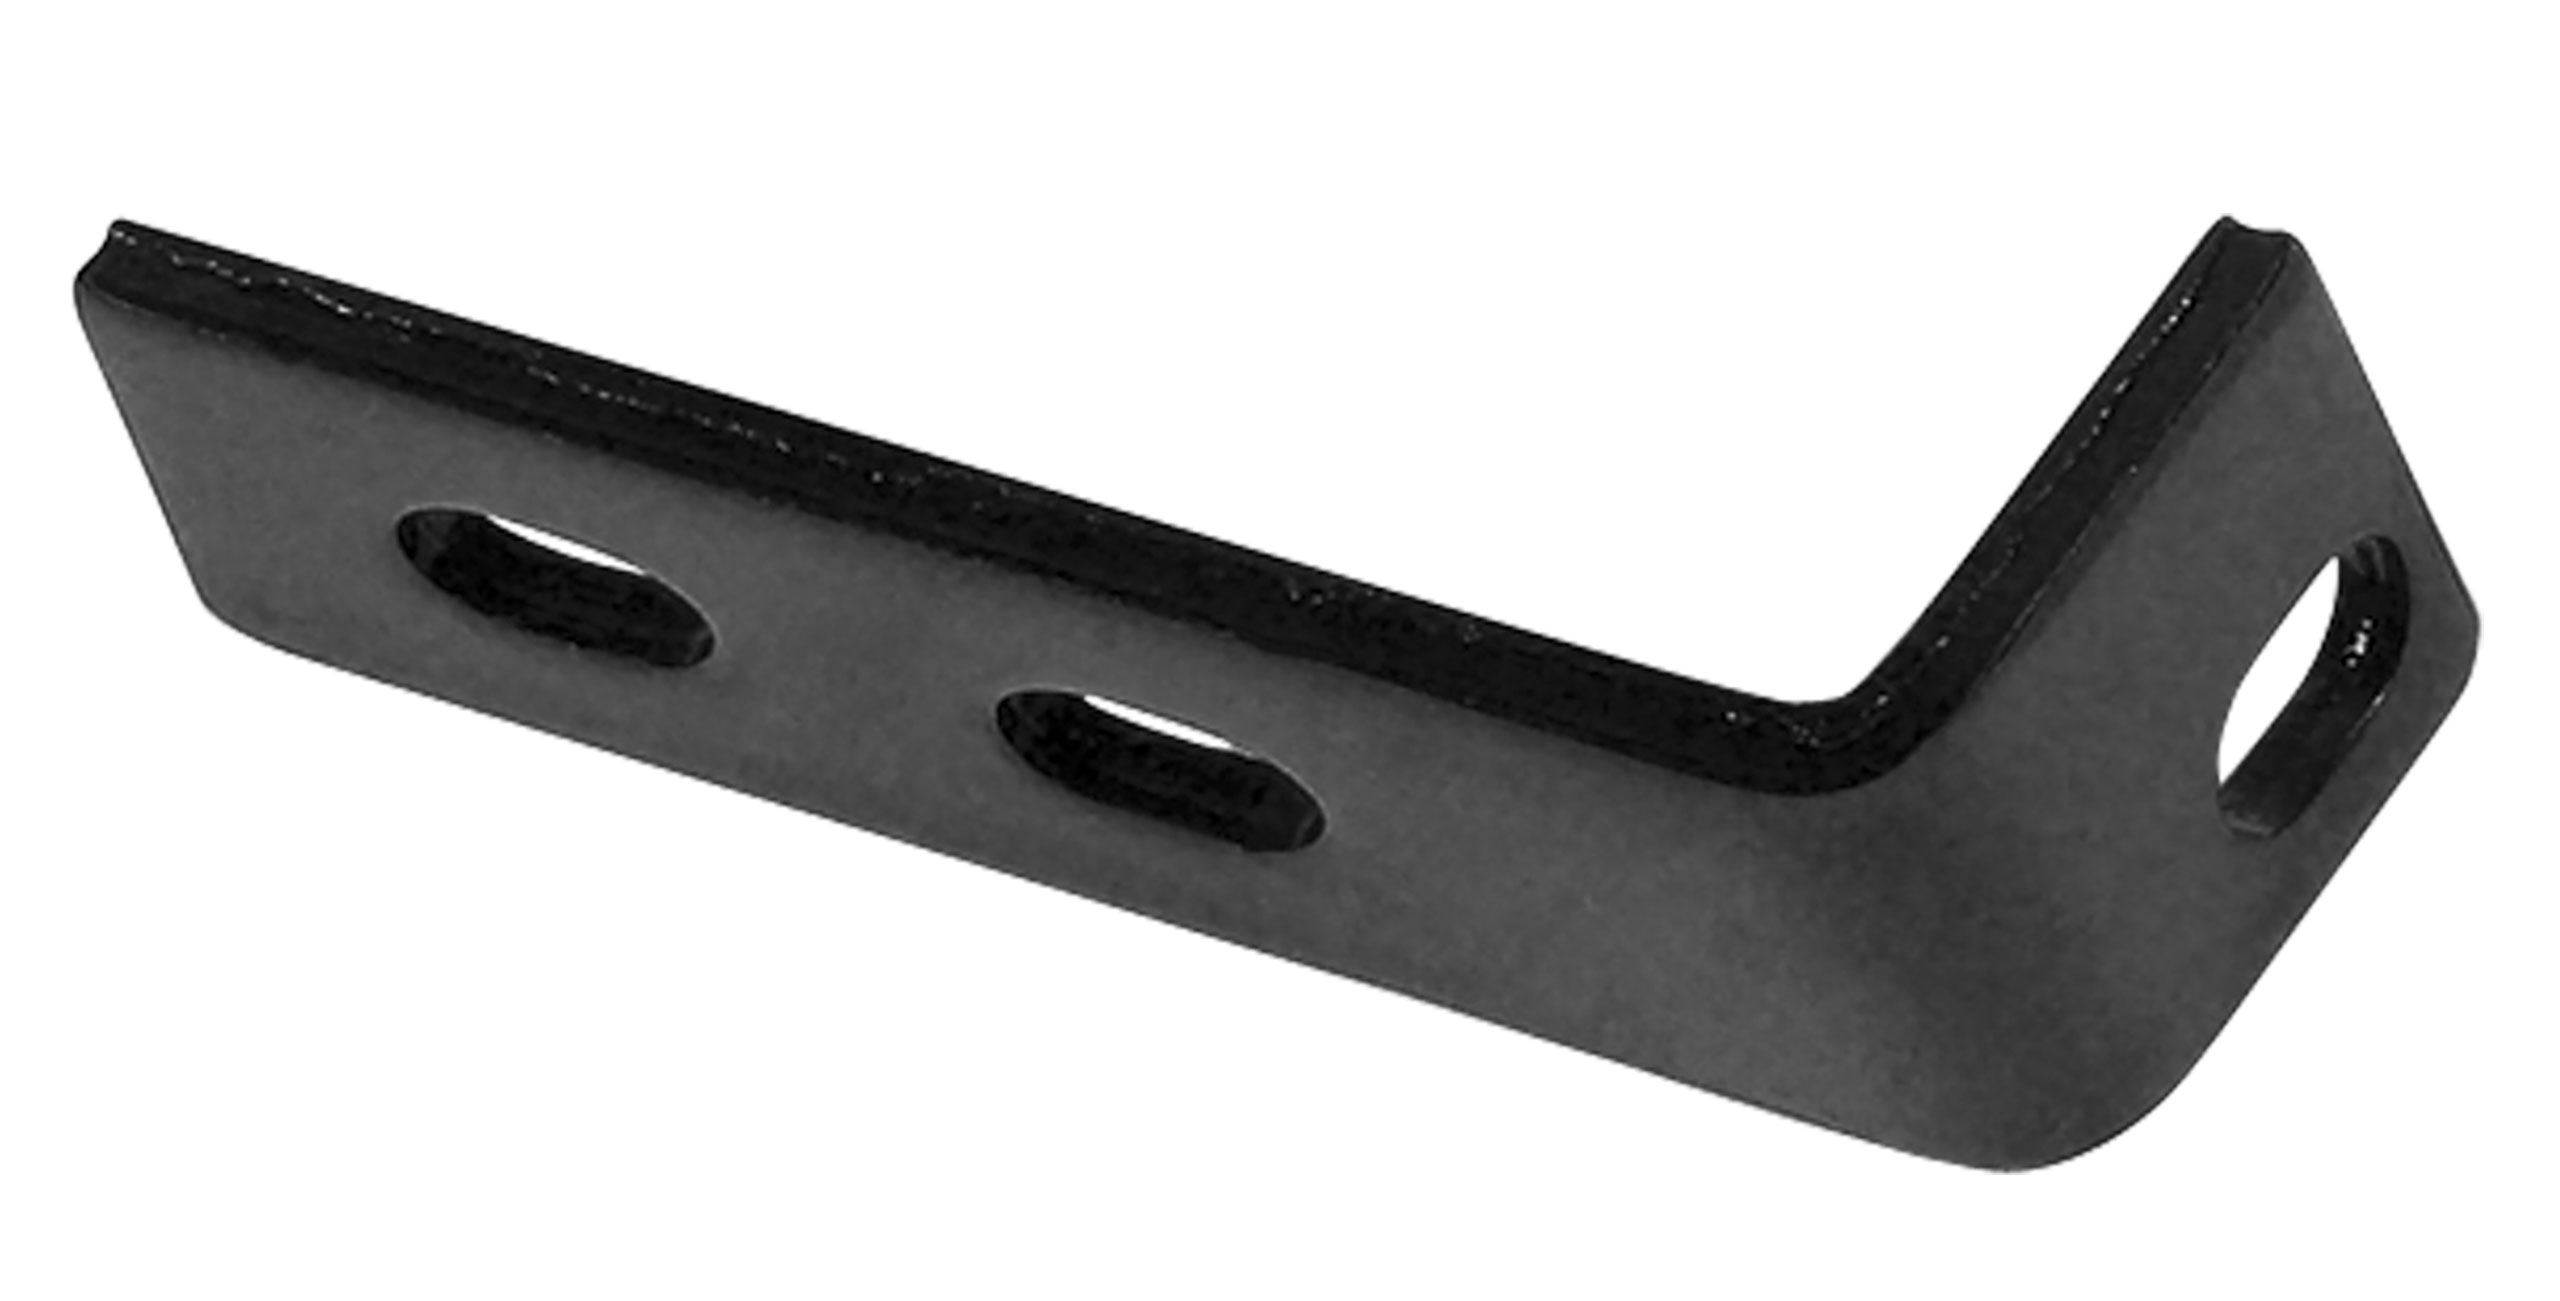 Corvette America 1968-1972 Chevrolet Corvette Front Bumper Guard To Crossmember Extension Bracket LH